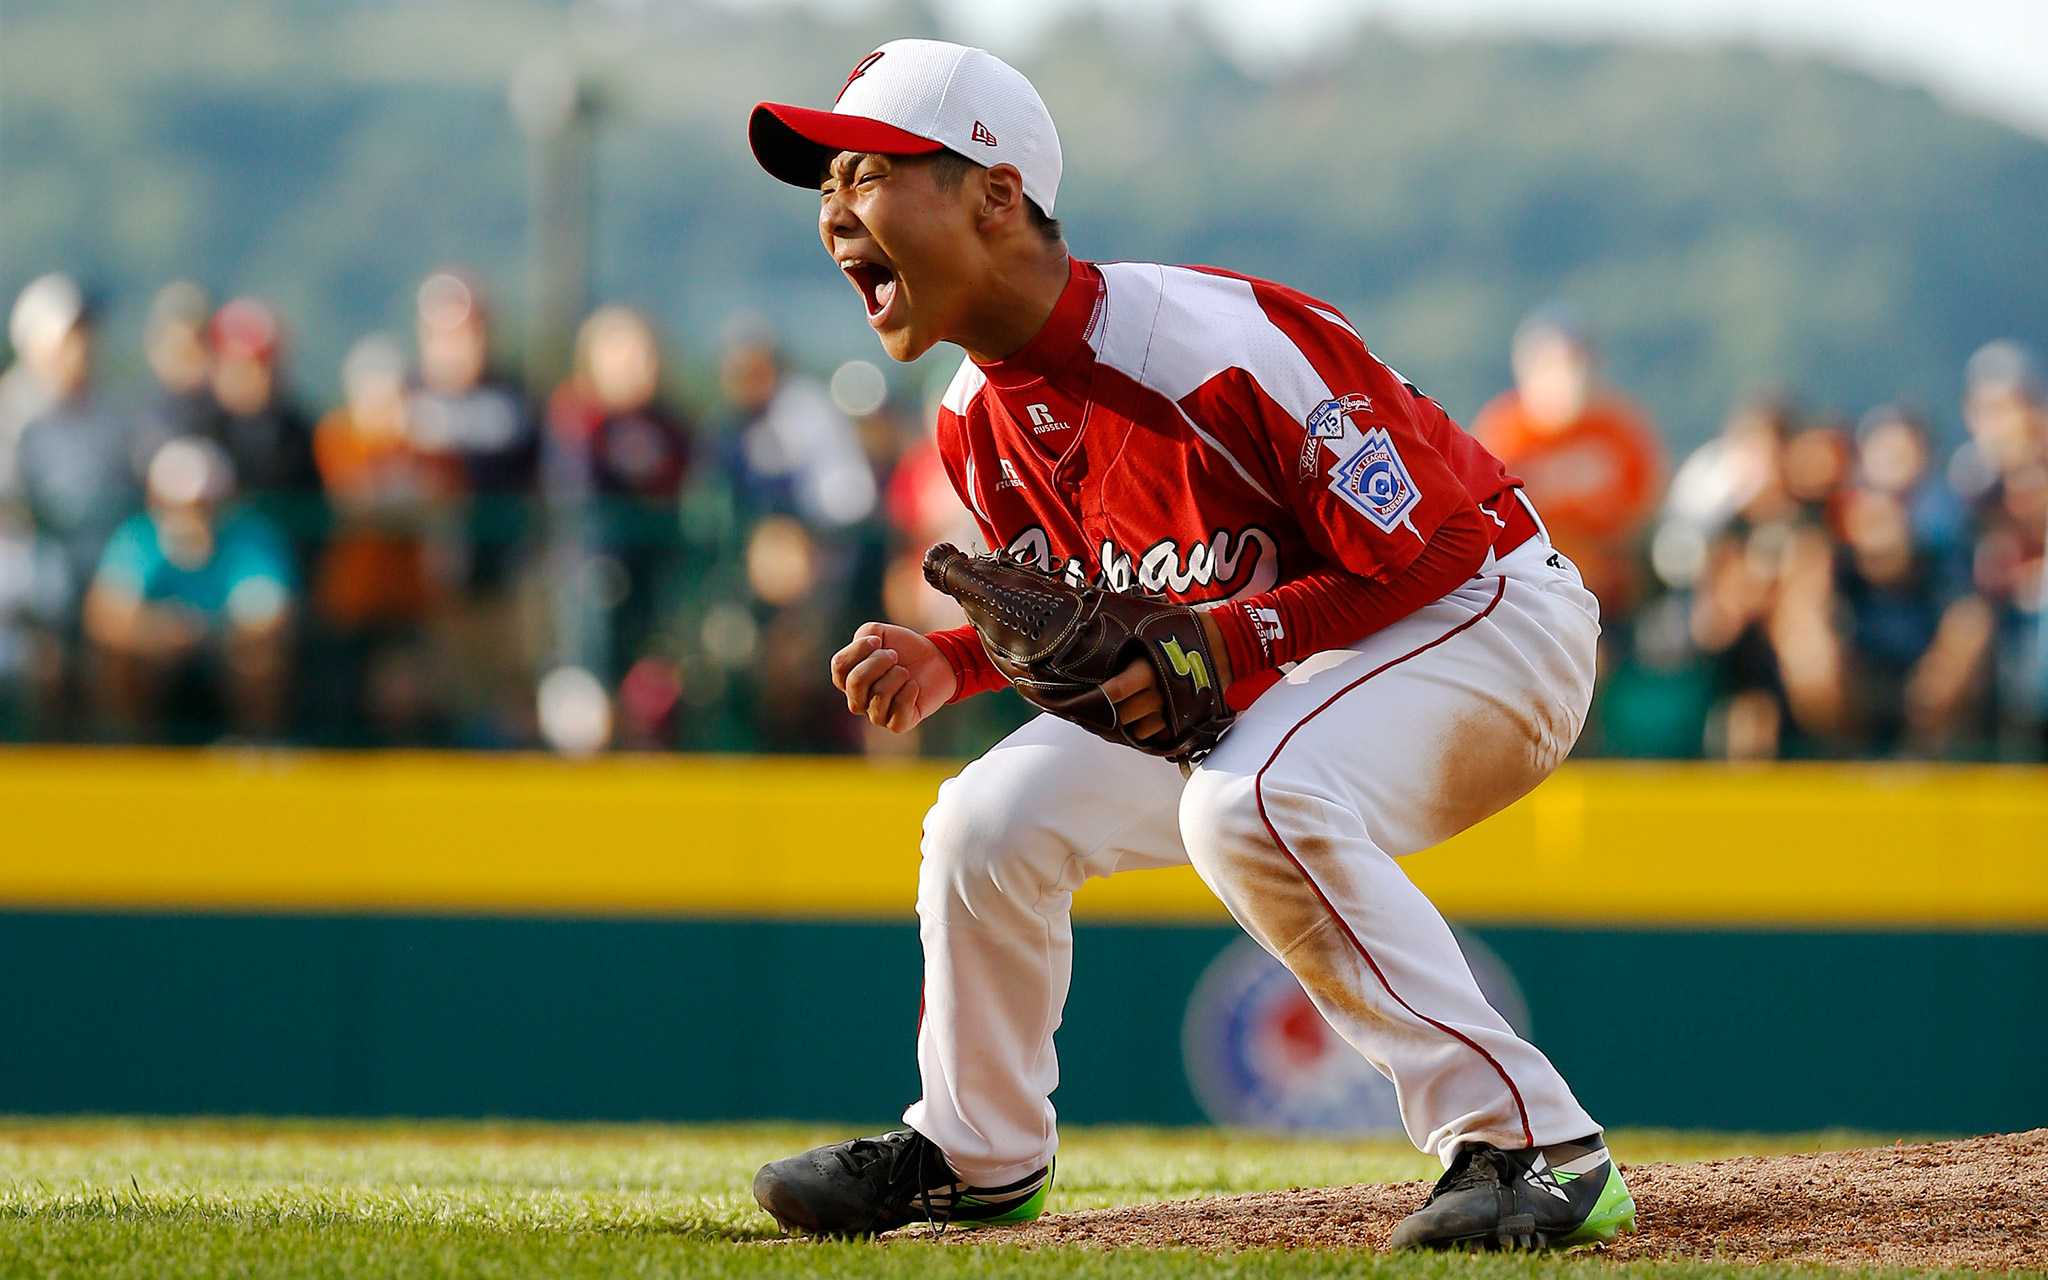 Takuma Takahashi of Tokyo, Japan, was thrilled after striking out Venezuela's Asnaldo Caicedo for the final out of his team's 1-0 win at the Little League World Series.